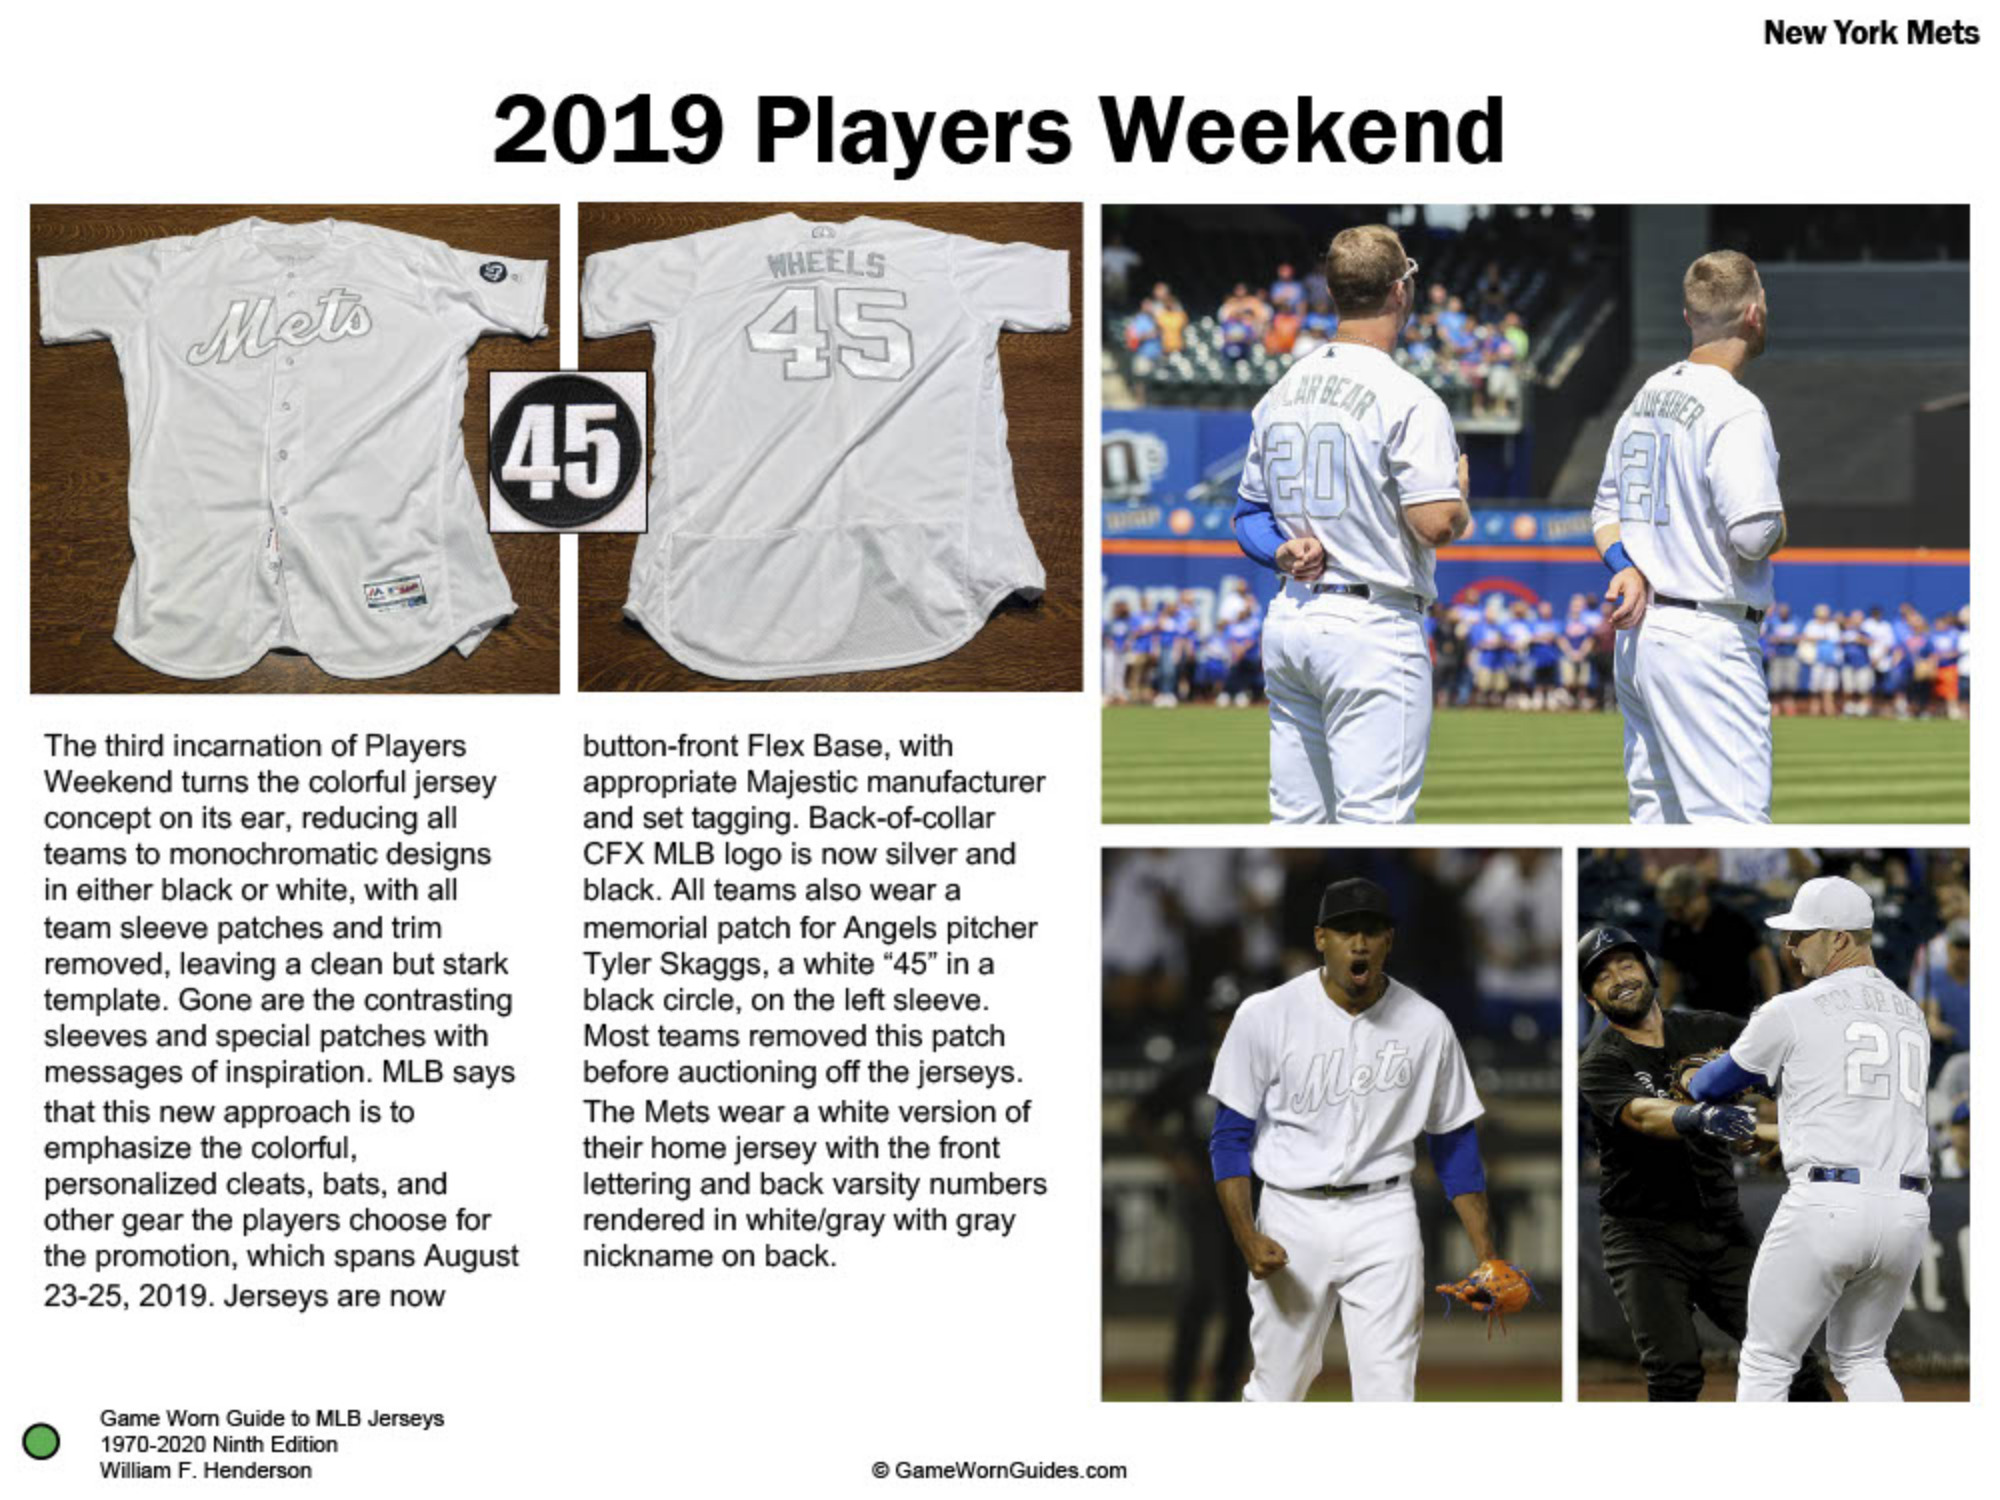 Game Worn Guide to New York Mets Jerseys (1970-2020)